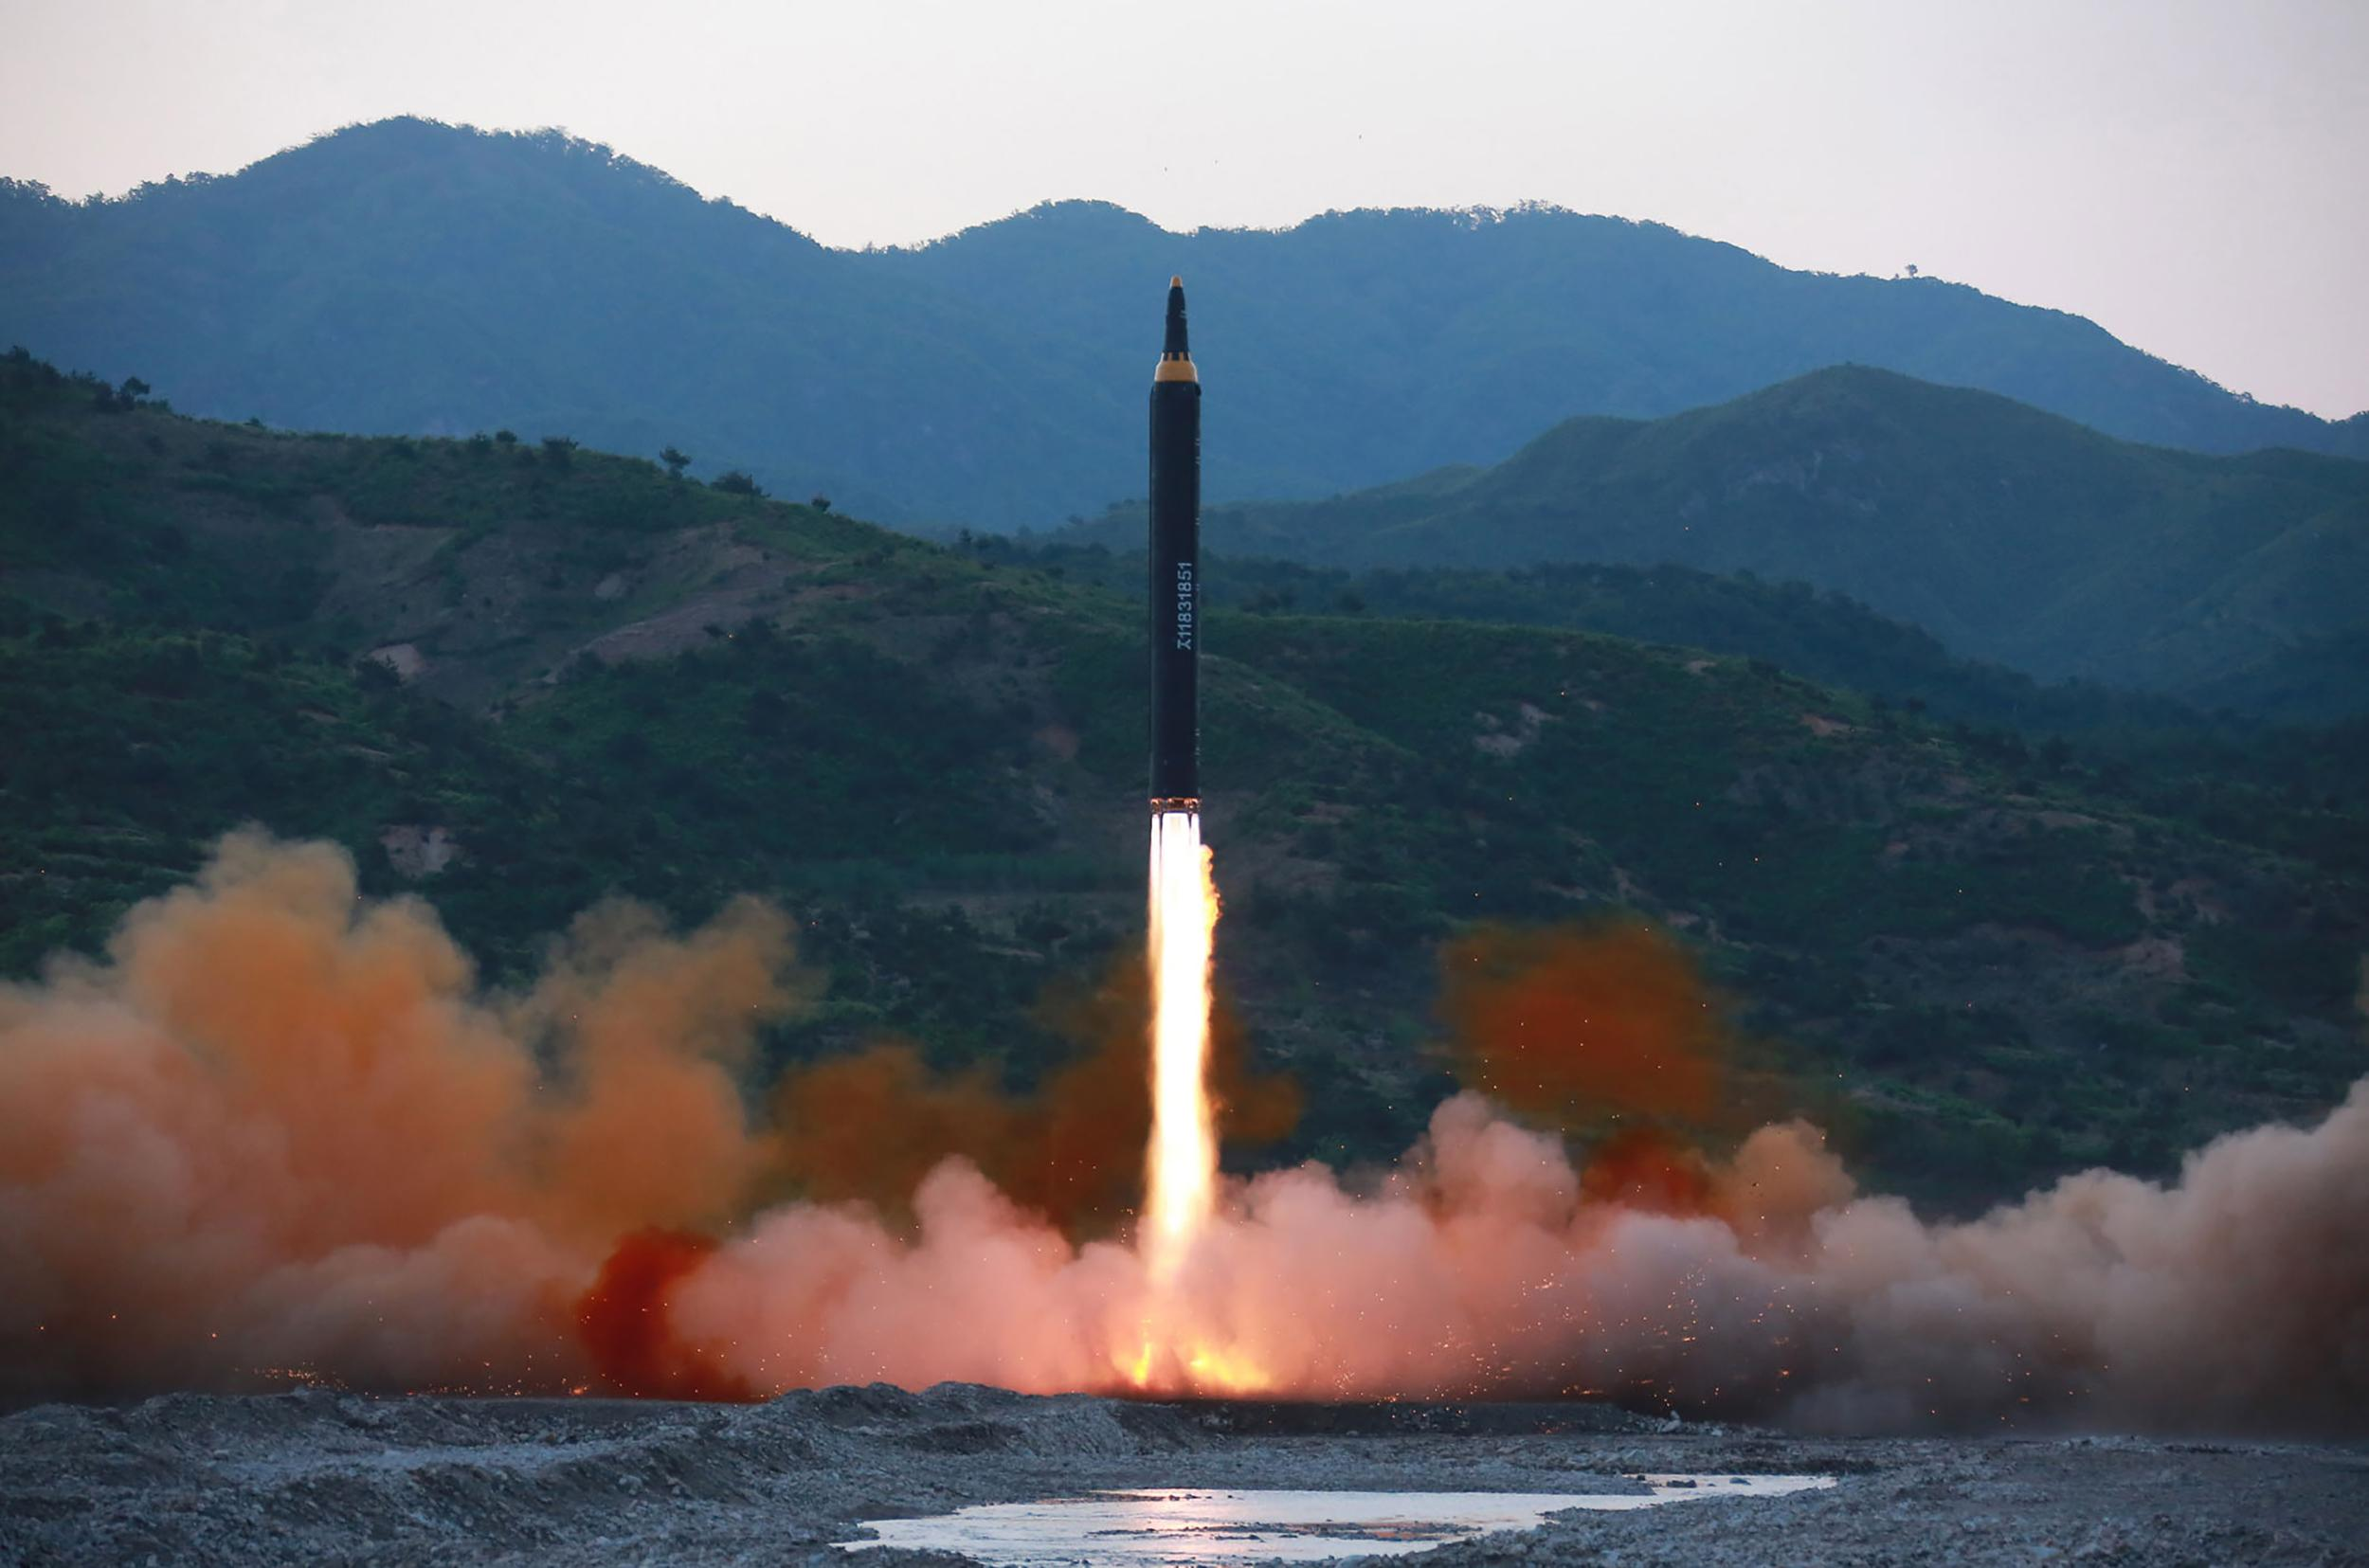 Did N.Korean missile hit own city? By